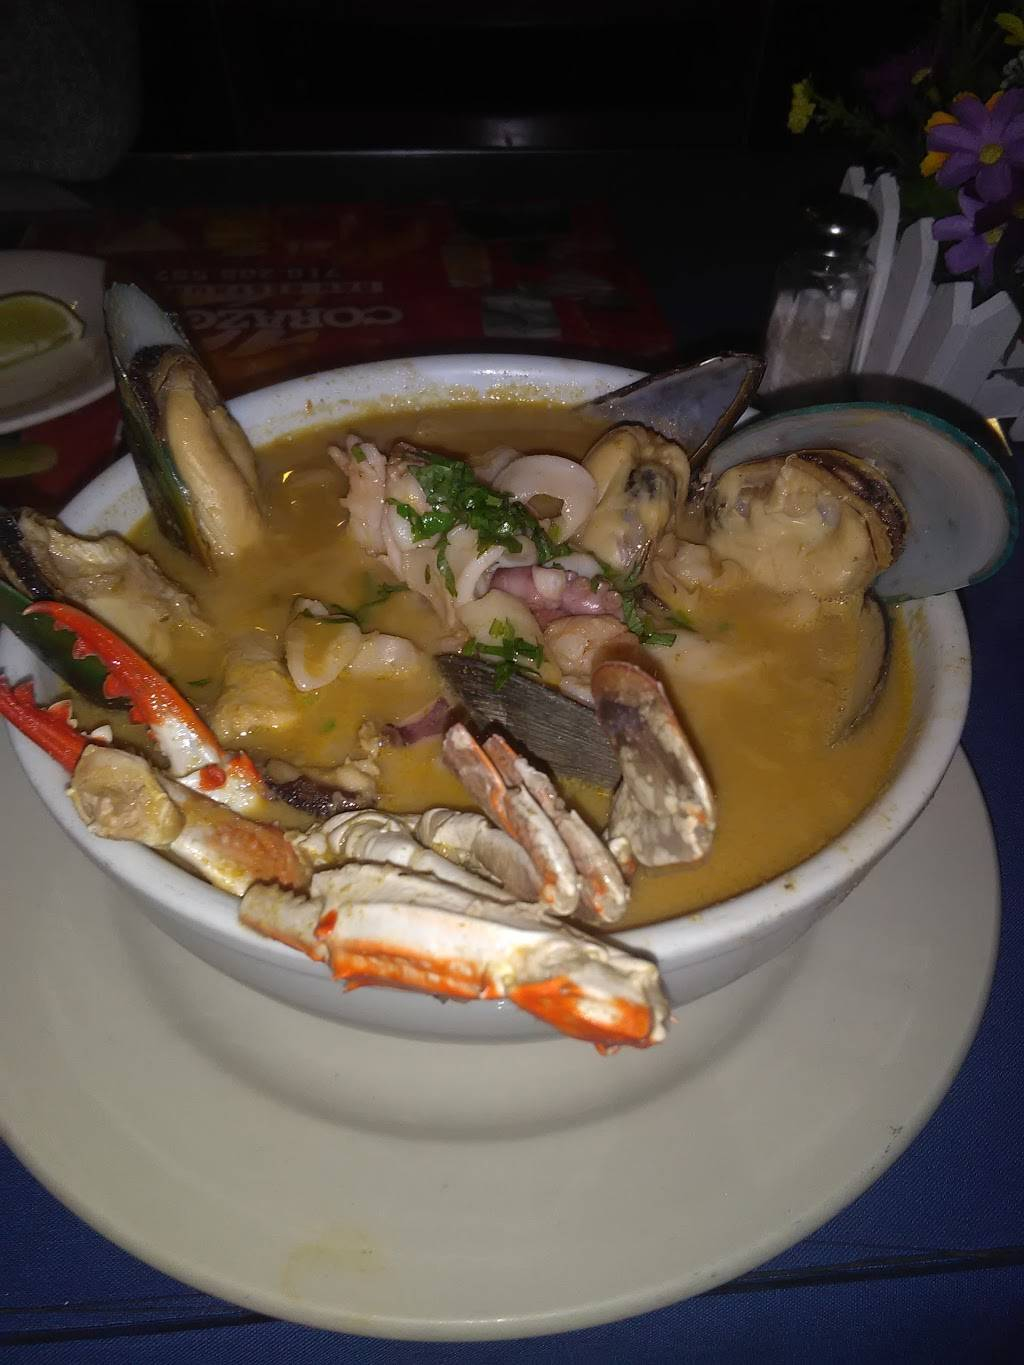 12 Corazones | restaurant | 86-22 Roosevelt Ave, Jackson Heights, NY 11372, USA | 7182055575 OR +1 718-205-5575